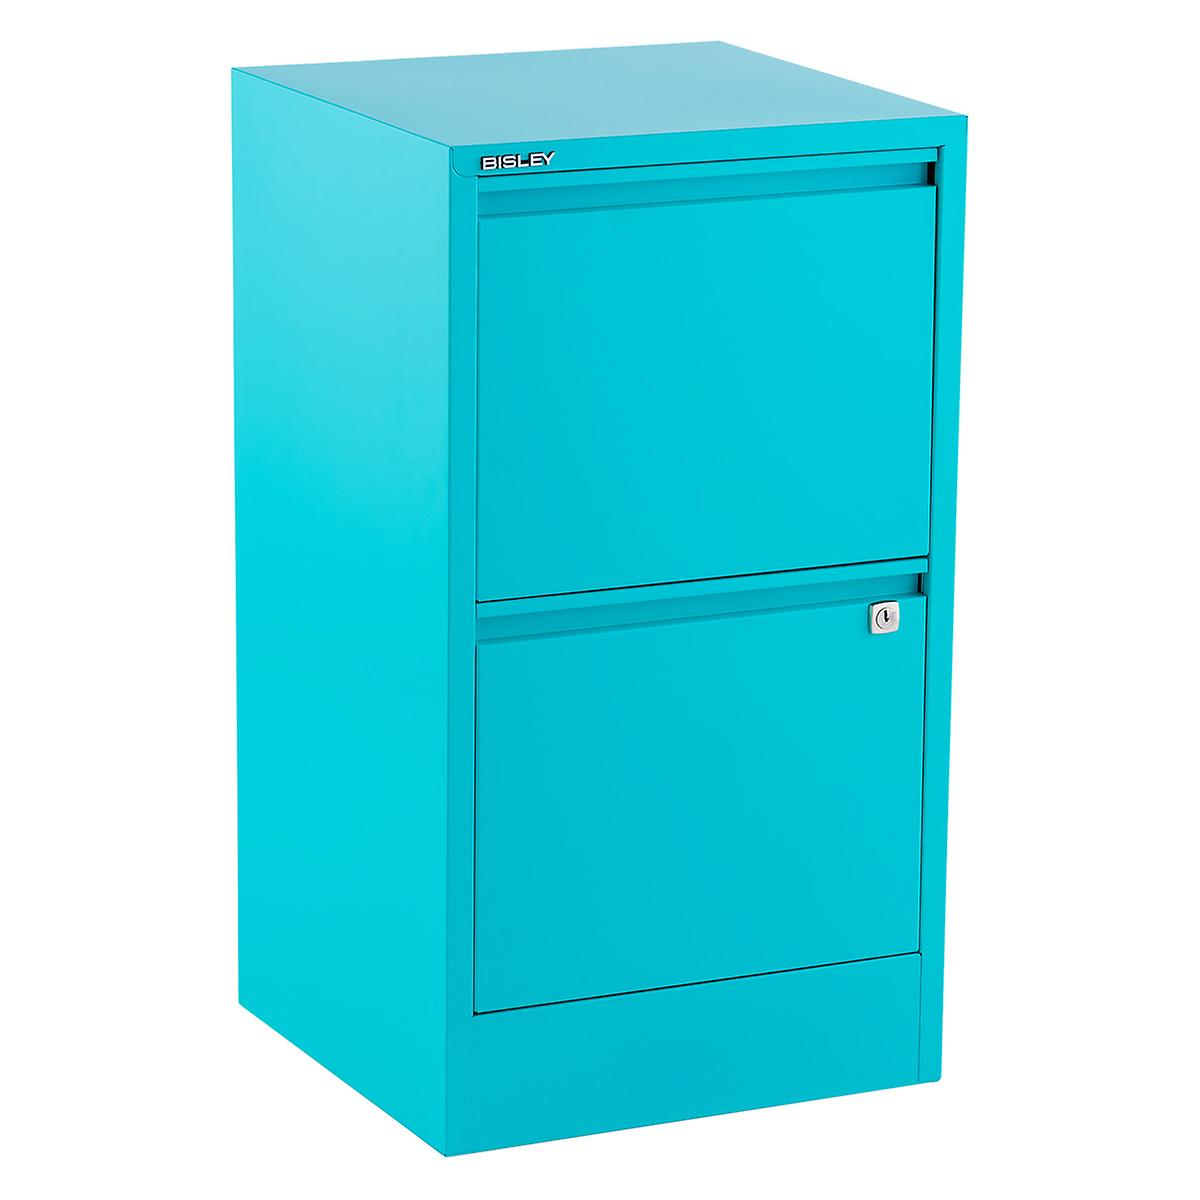 Bisley Aqua 2- & 3-Drawer Locking Filing Cabinets | The Container Store